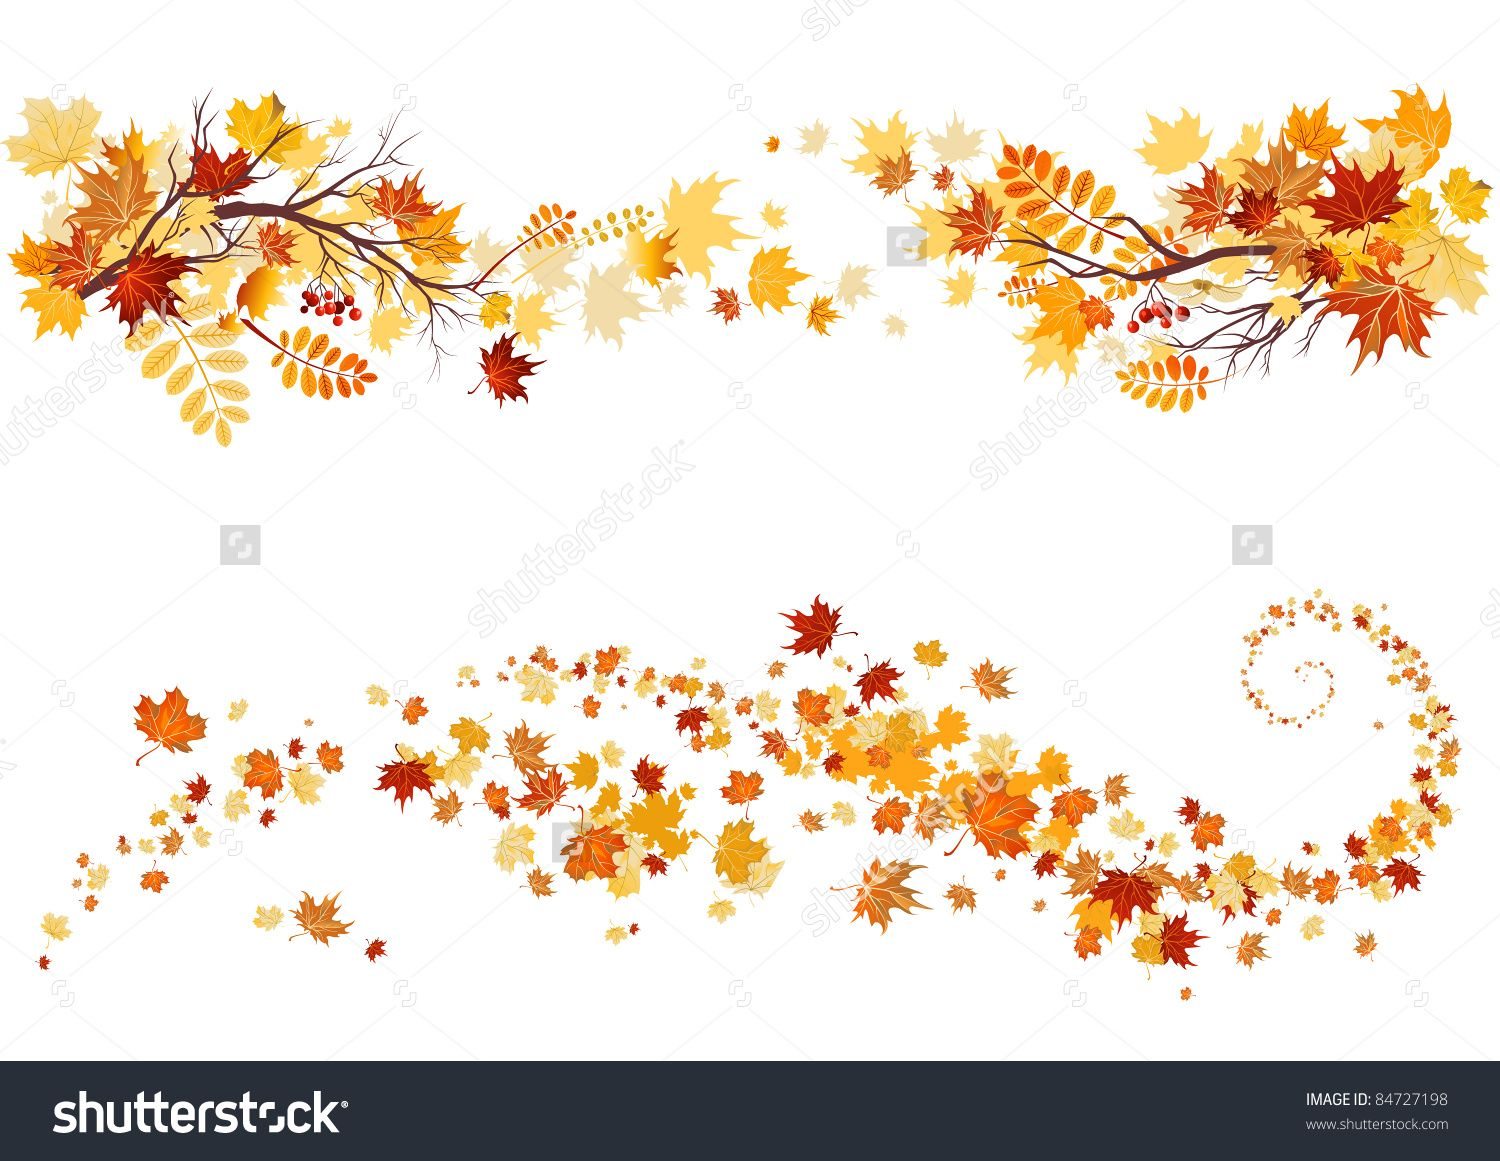 Autumn Leaves Border Stock Vector Illustration 84727198.